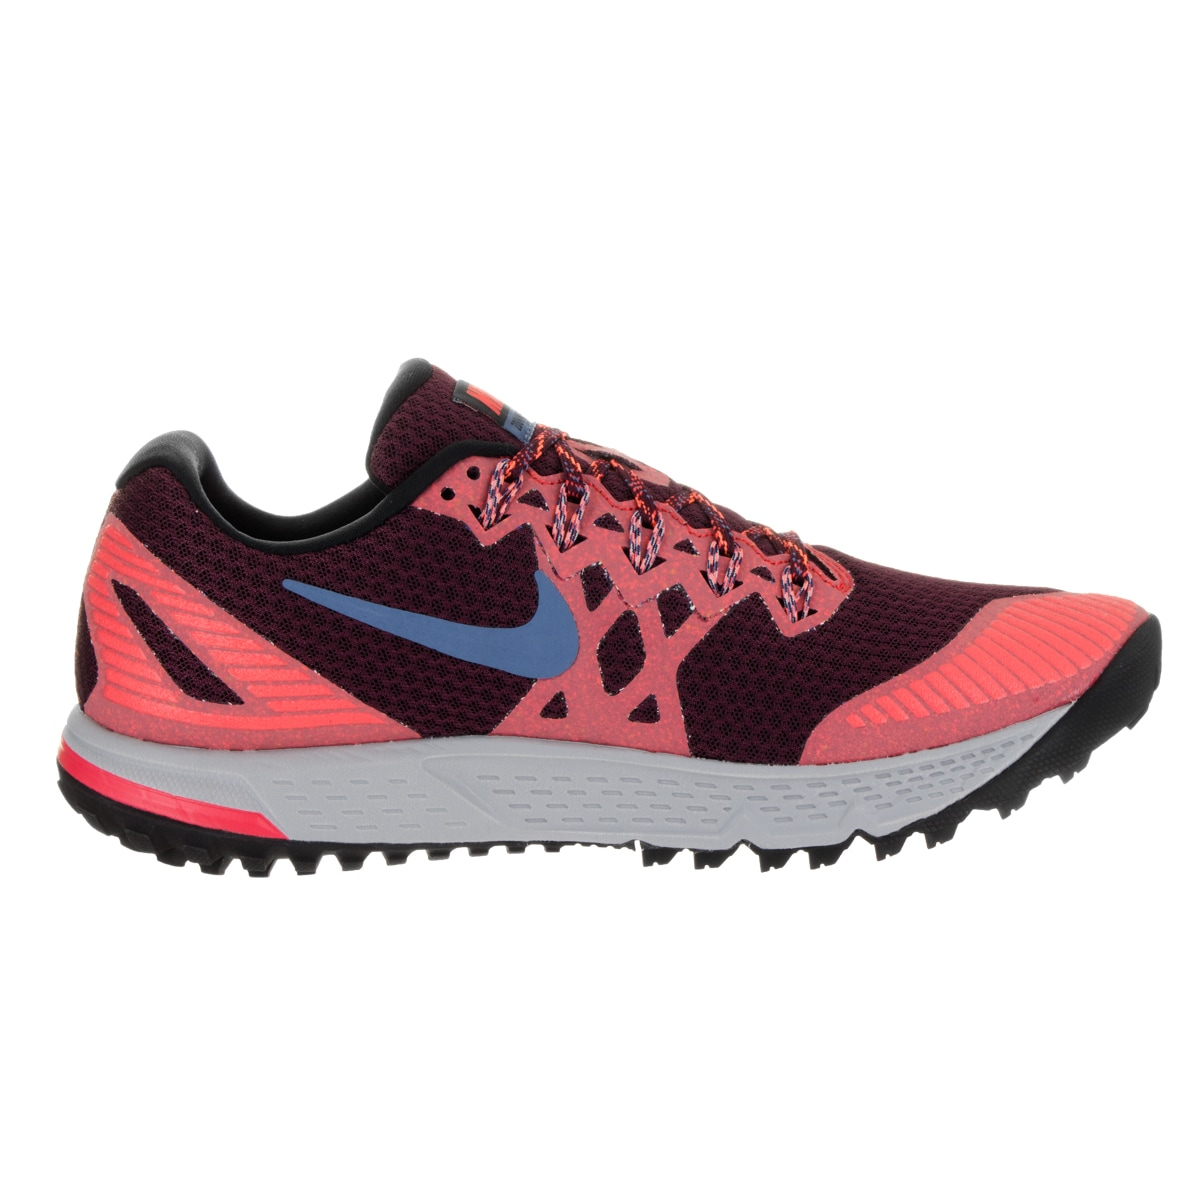 005d330ea2a1e Shop Nike Men s Air Zoom Wildhorse 3 Multicolor Mesh Running Shoes - Free  Shipping Today - Overstock - 13478197